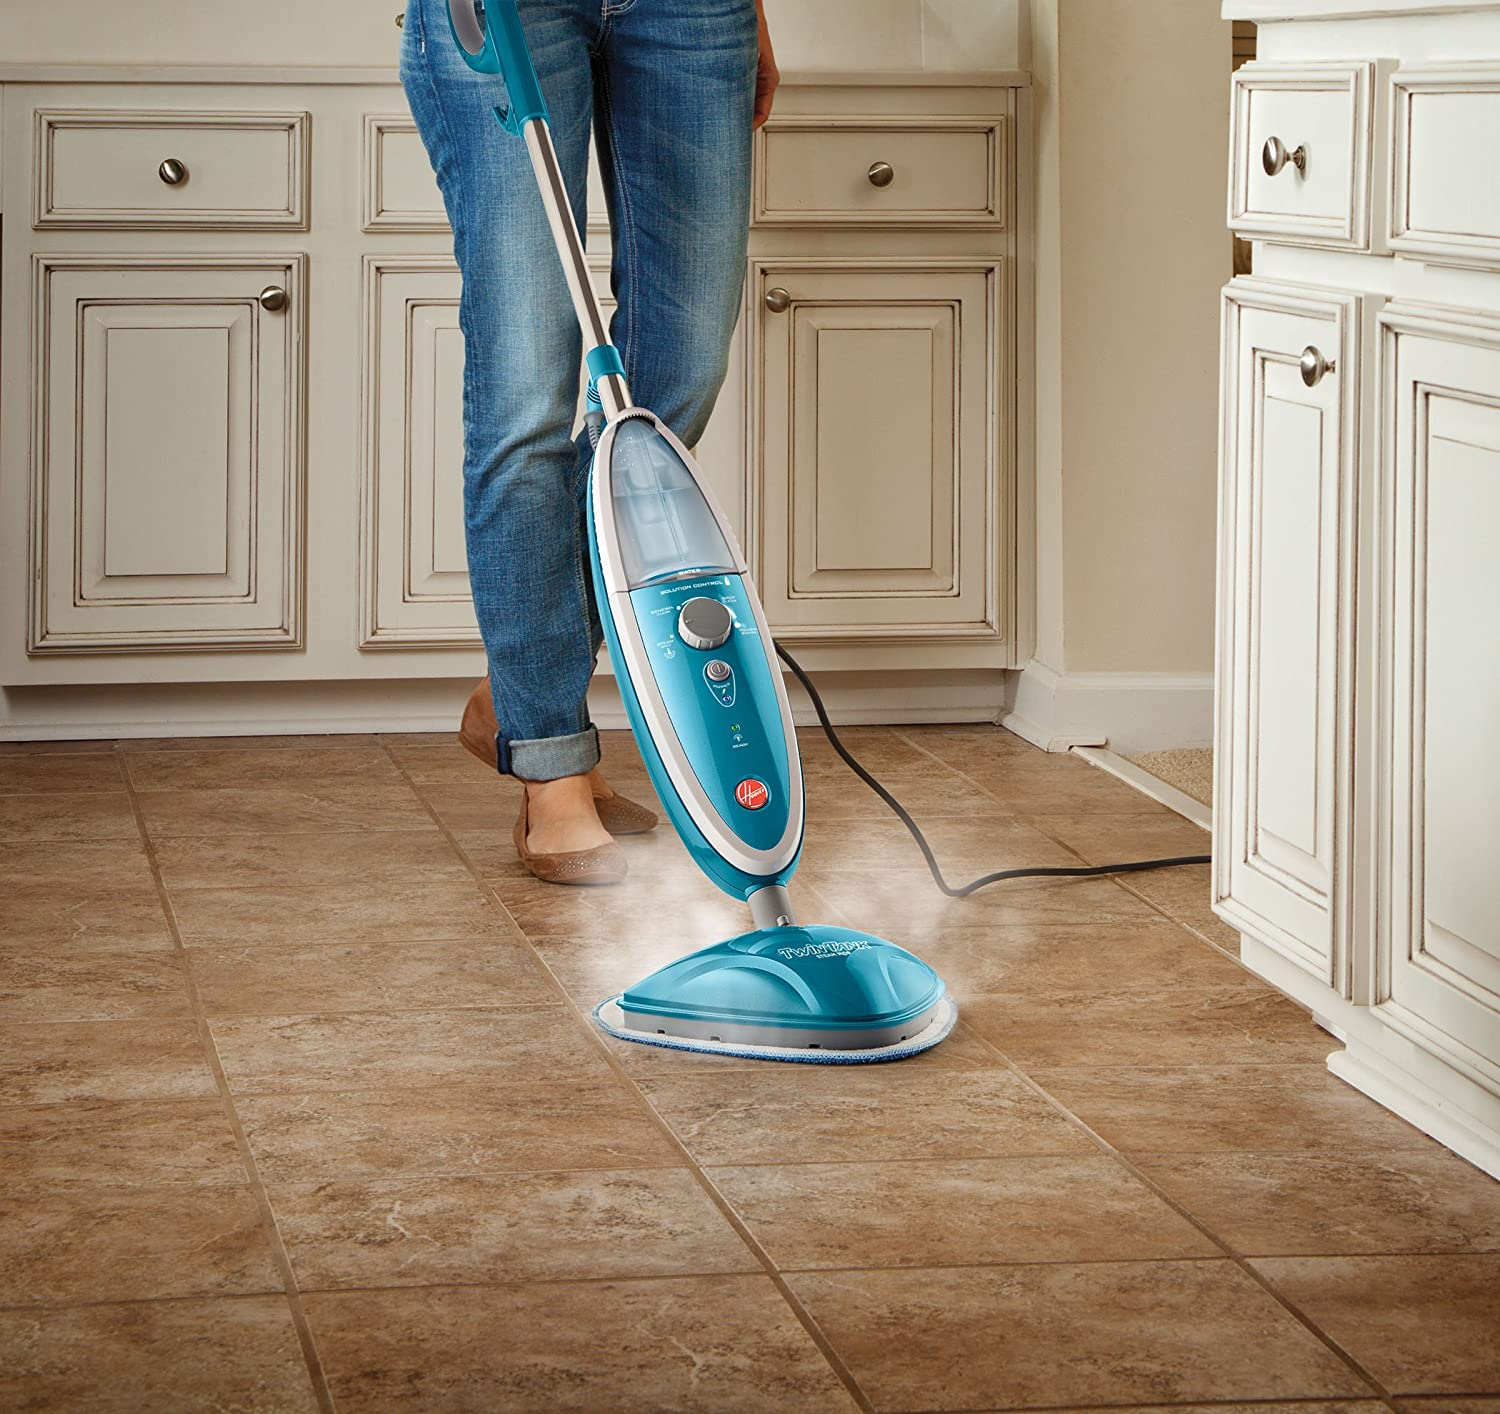 Amazon.com: Hoover Steam Mop TwinTank Steam Cleaner WH20200: Home U0026 Kitchen